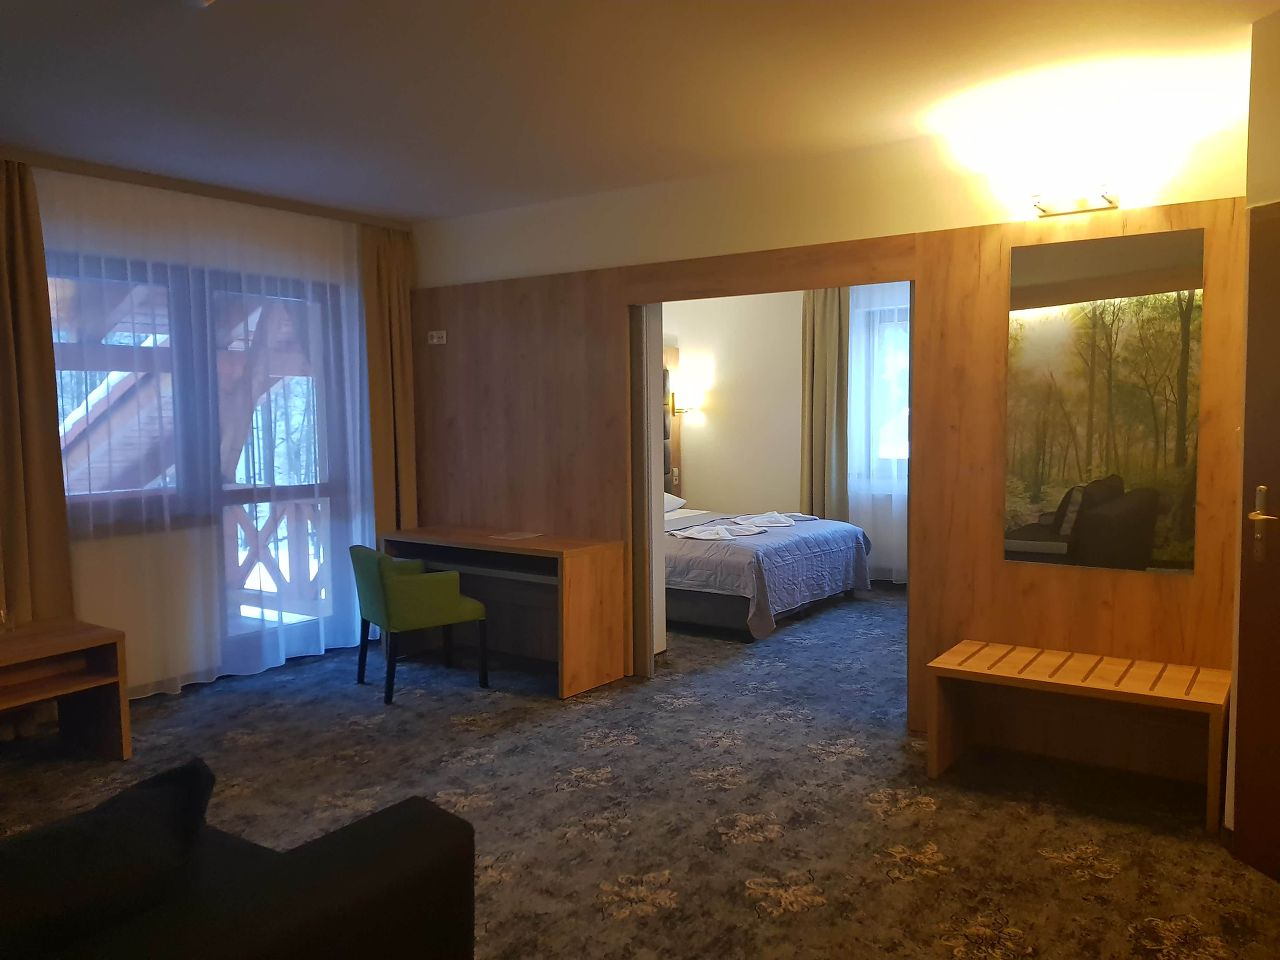 Photo 1 of Hotel Goral